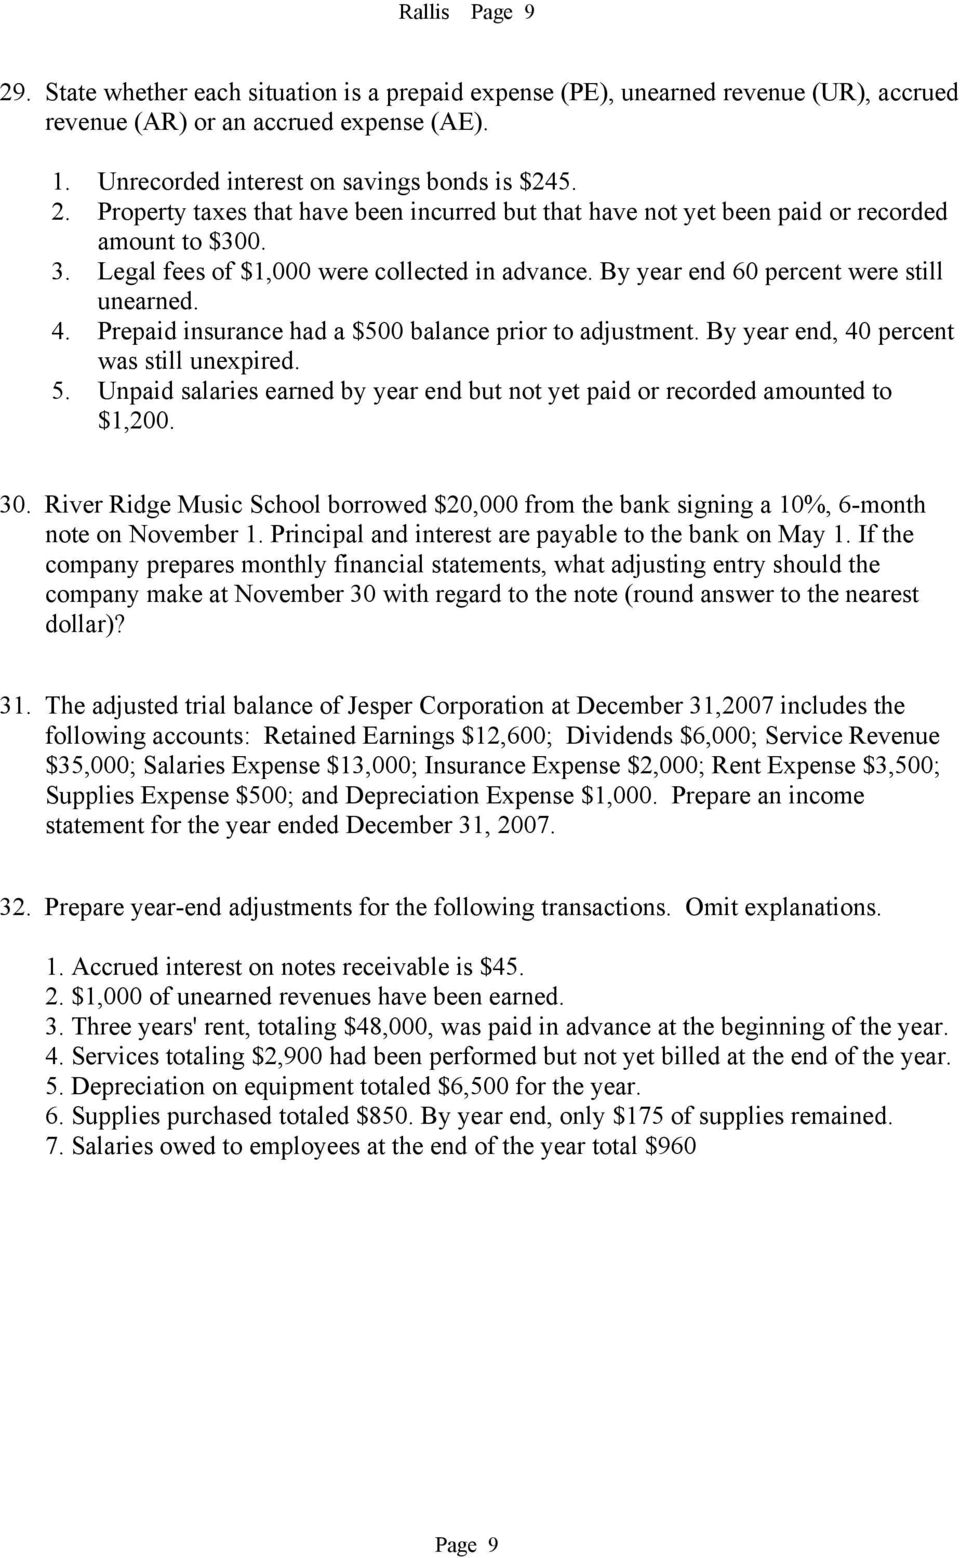 5. Unpaid salaries earned by year end but not yet paid or recorded amounted to $1,200. 30. River Ridge Music School borrowed $20,000 from the bank signing a 10%, 6-month note on November 1.